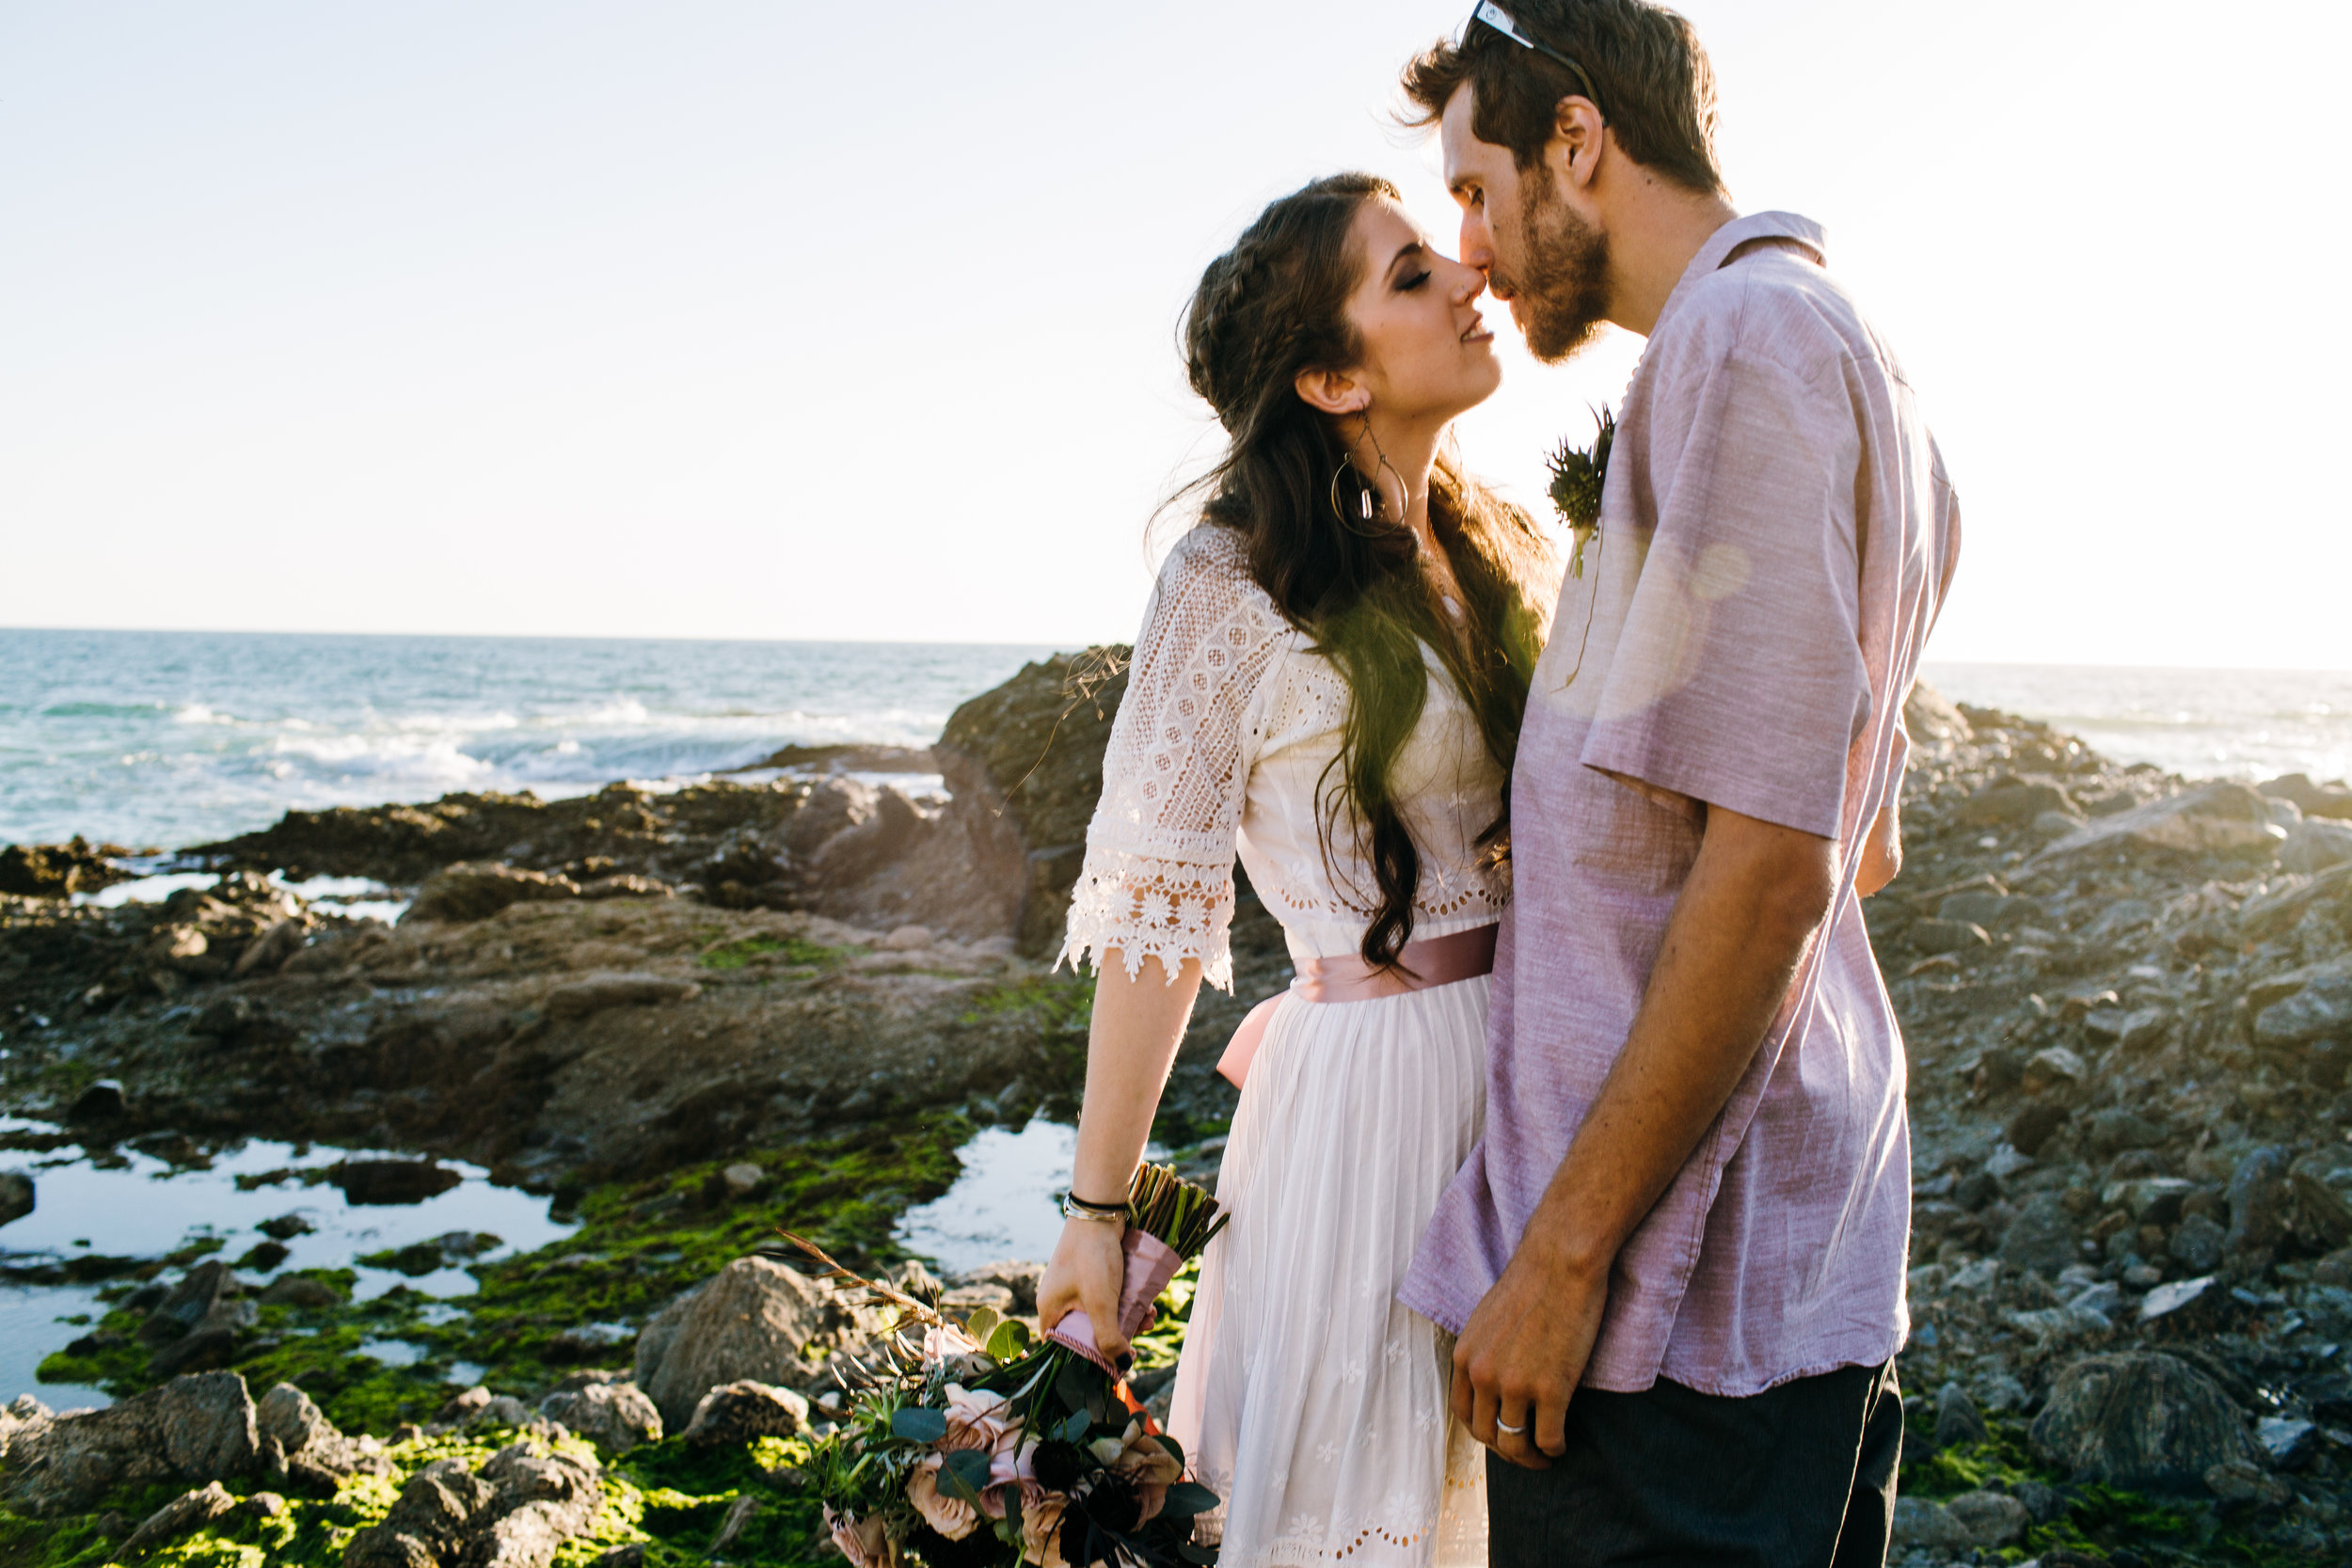 KaraNixonWeddings-LagunaBeach-Tablerock-Elopement-32.jpg